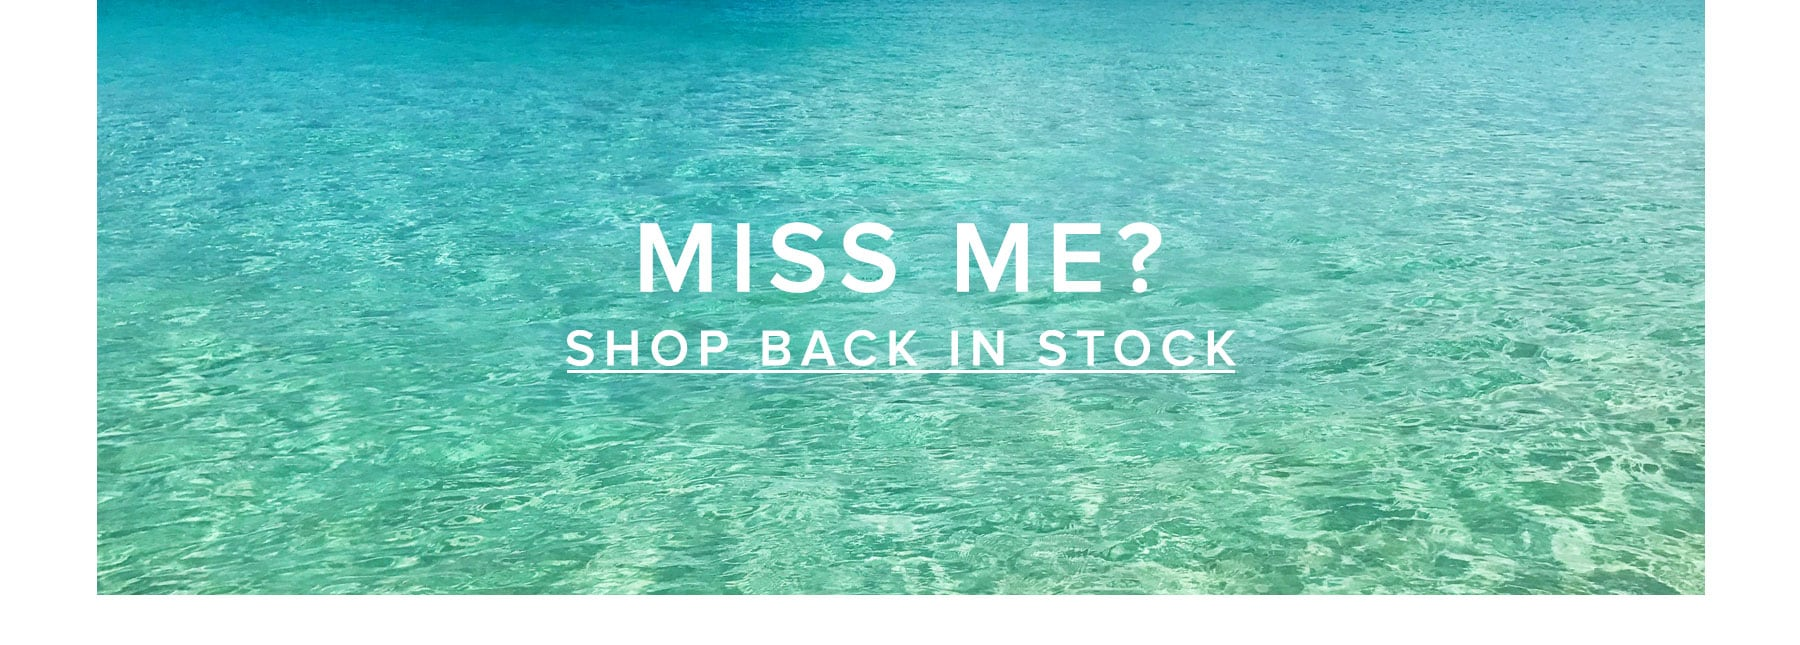 Shop Back in Stock